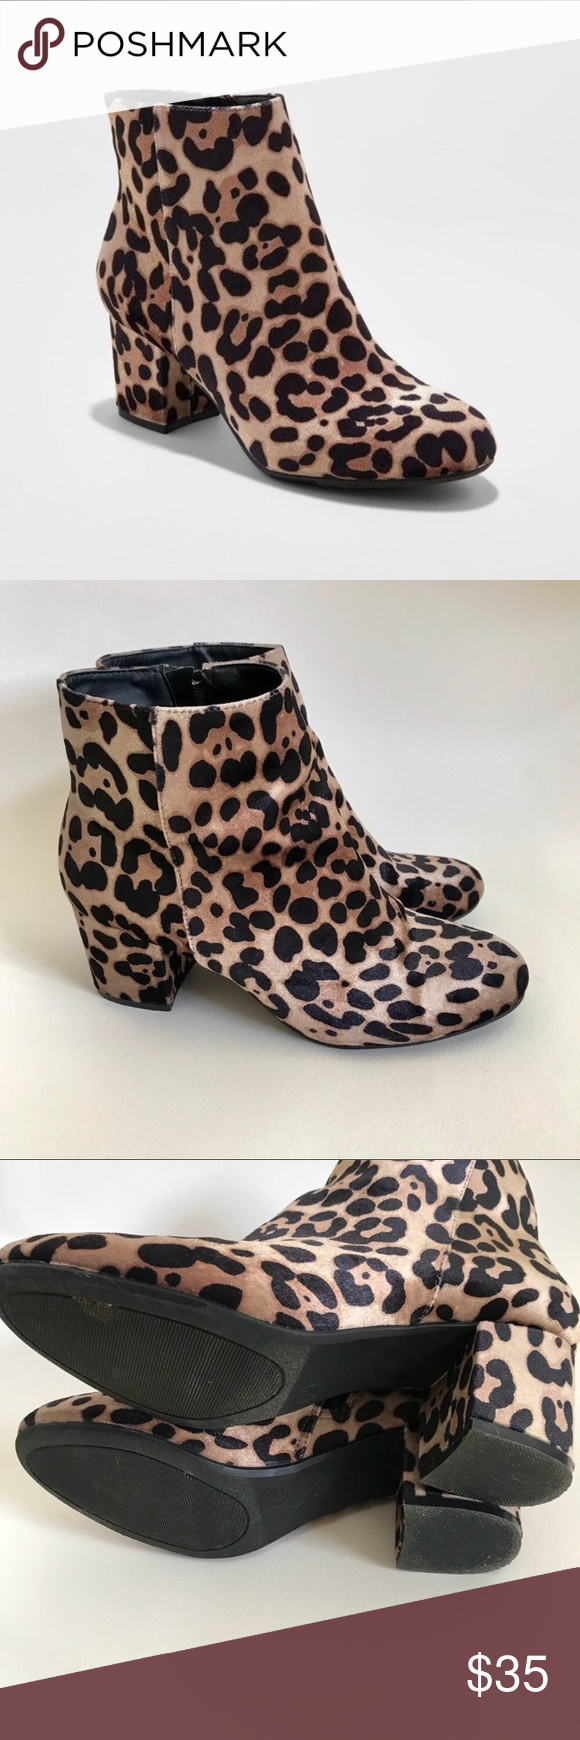 a new day leopard booties